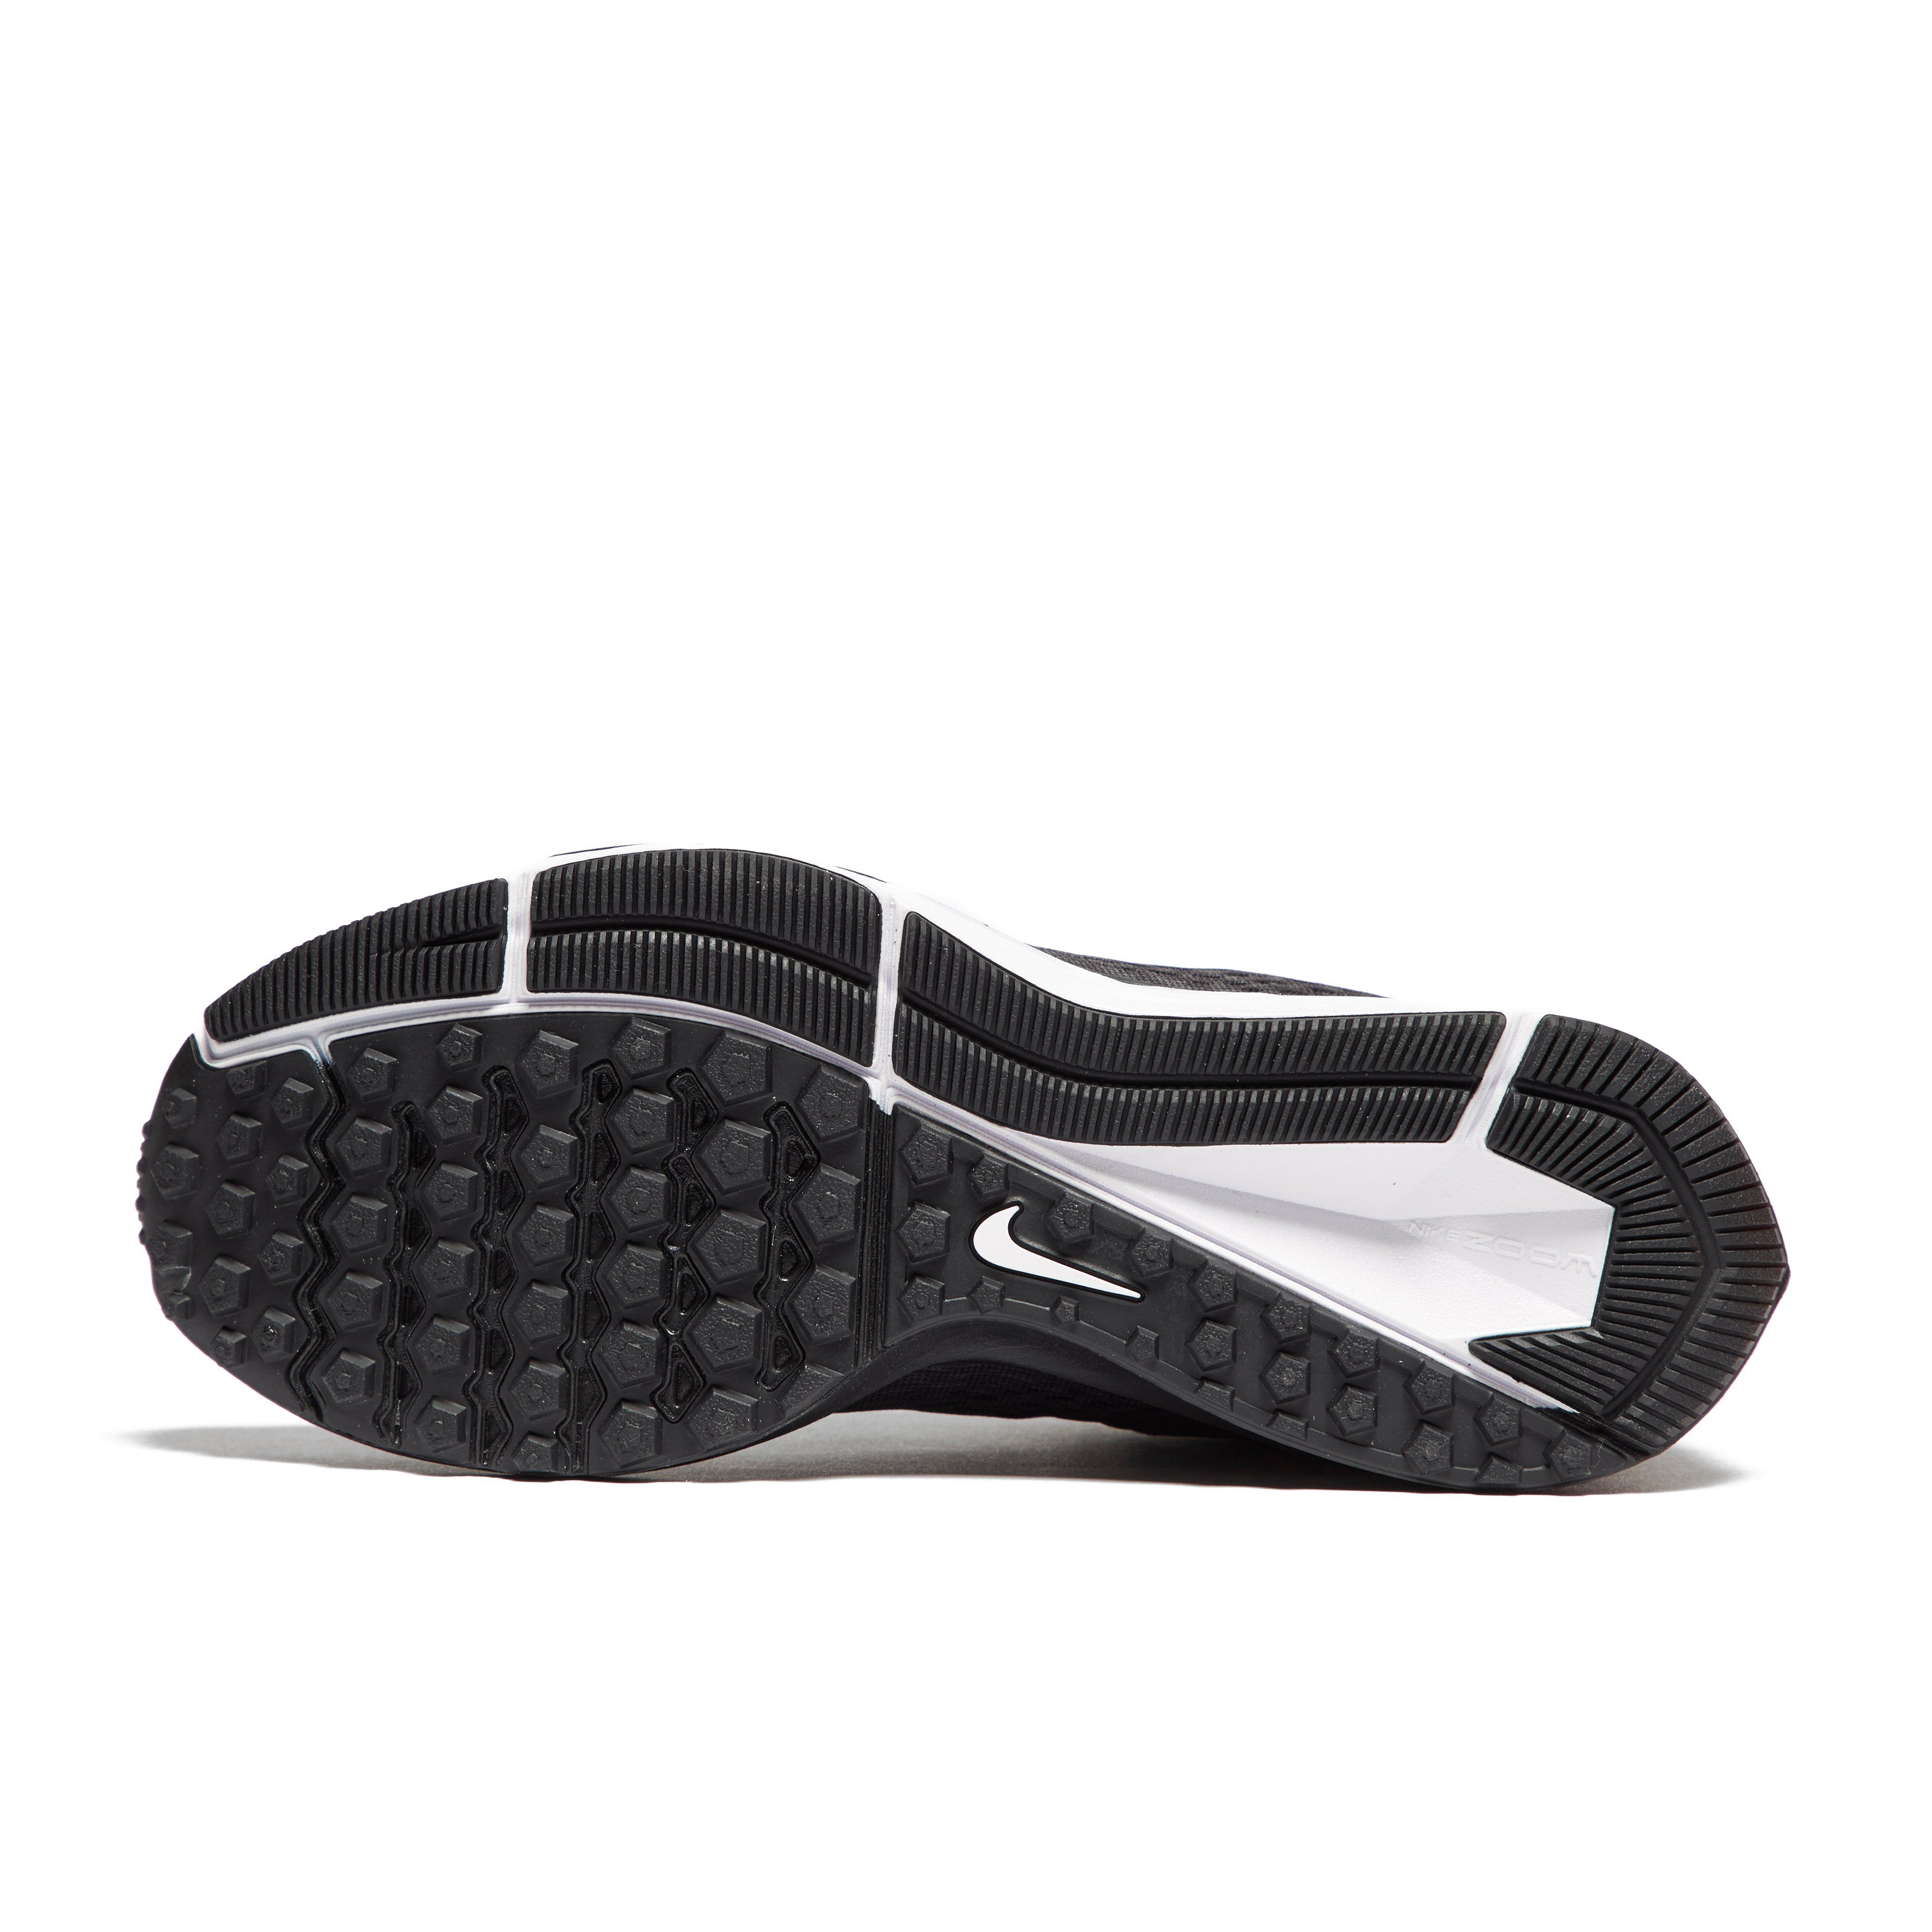 Nike Zoom Winflo 5 Men's Running Shoes